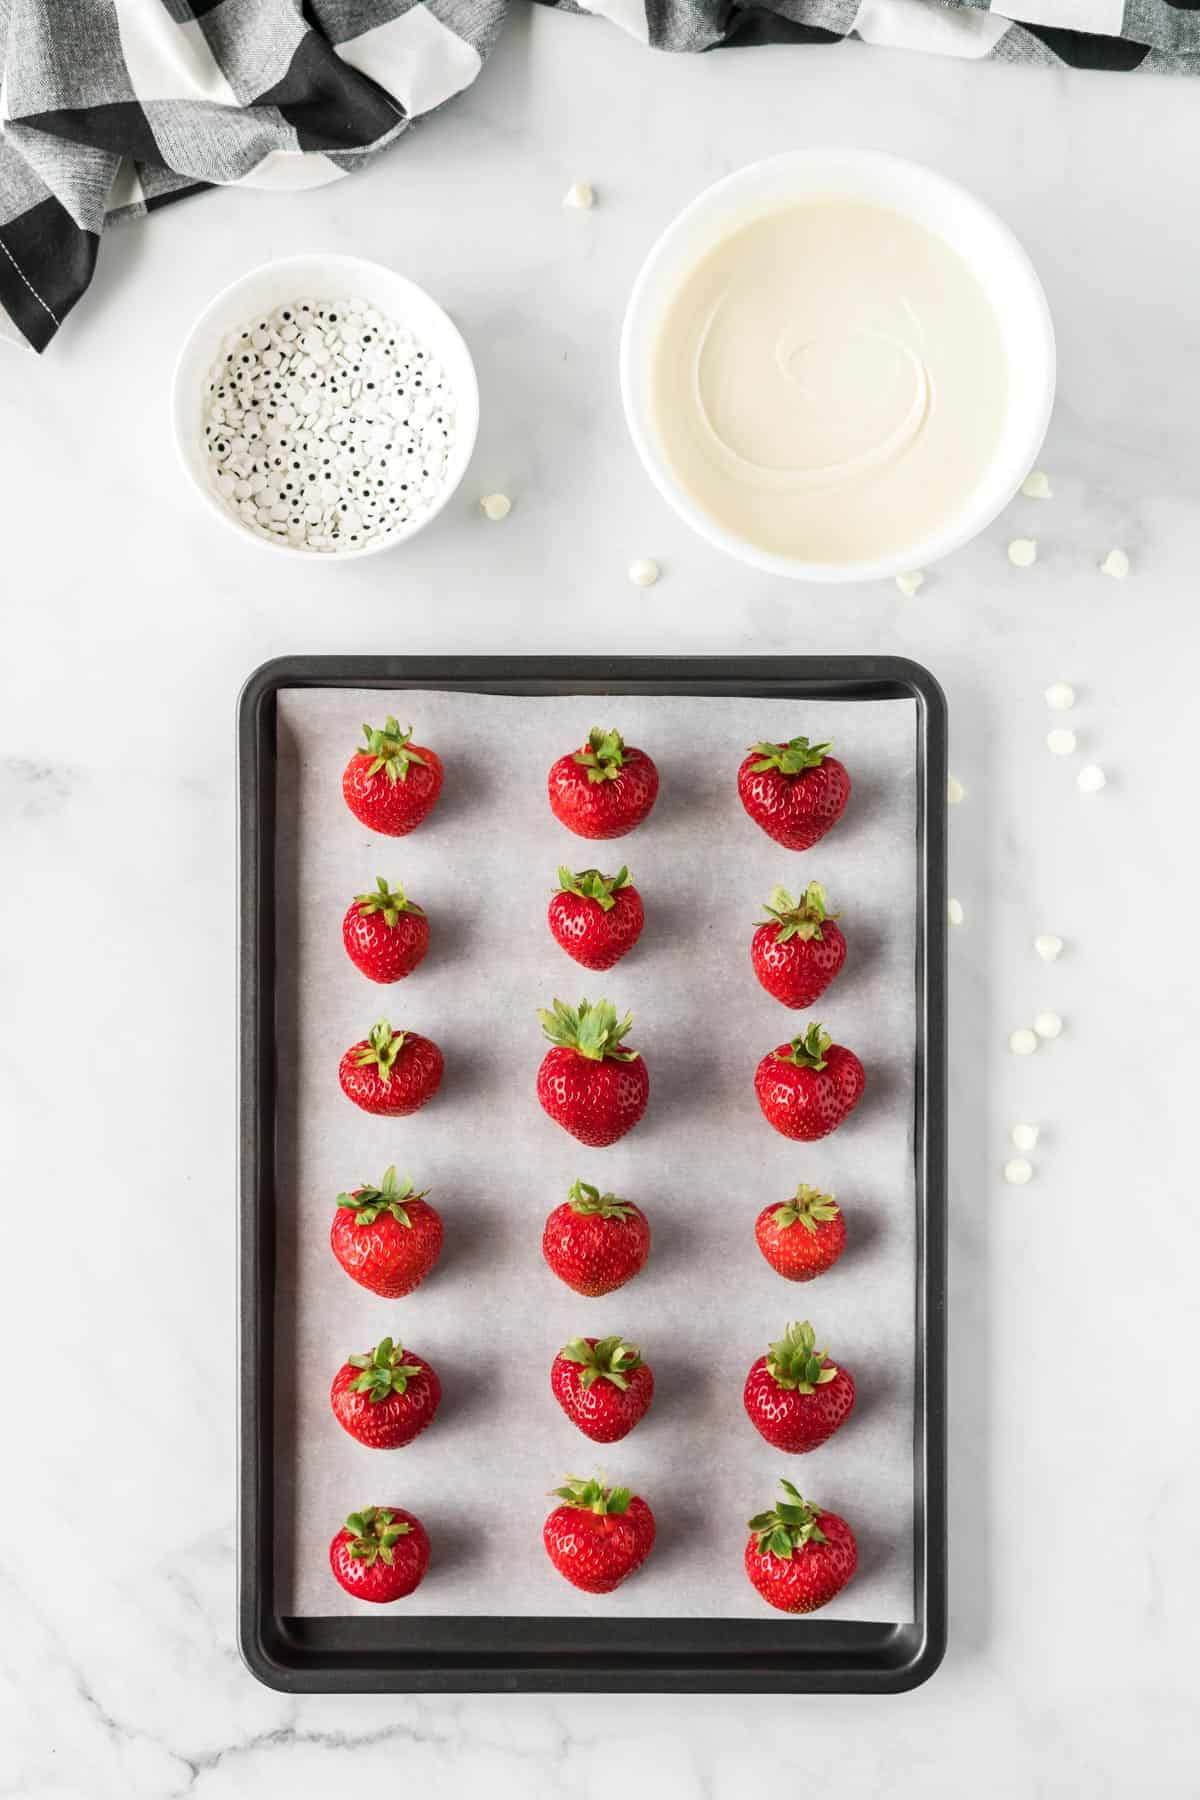 strawberries on a baking sheet